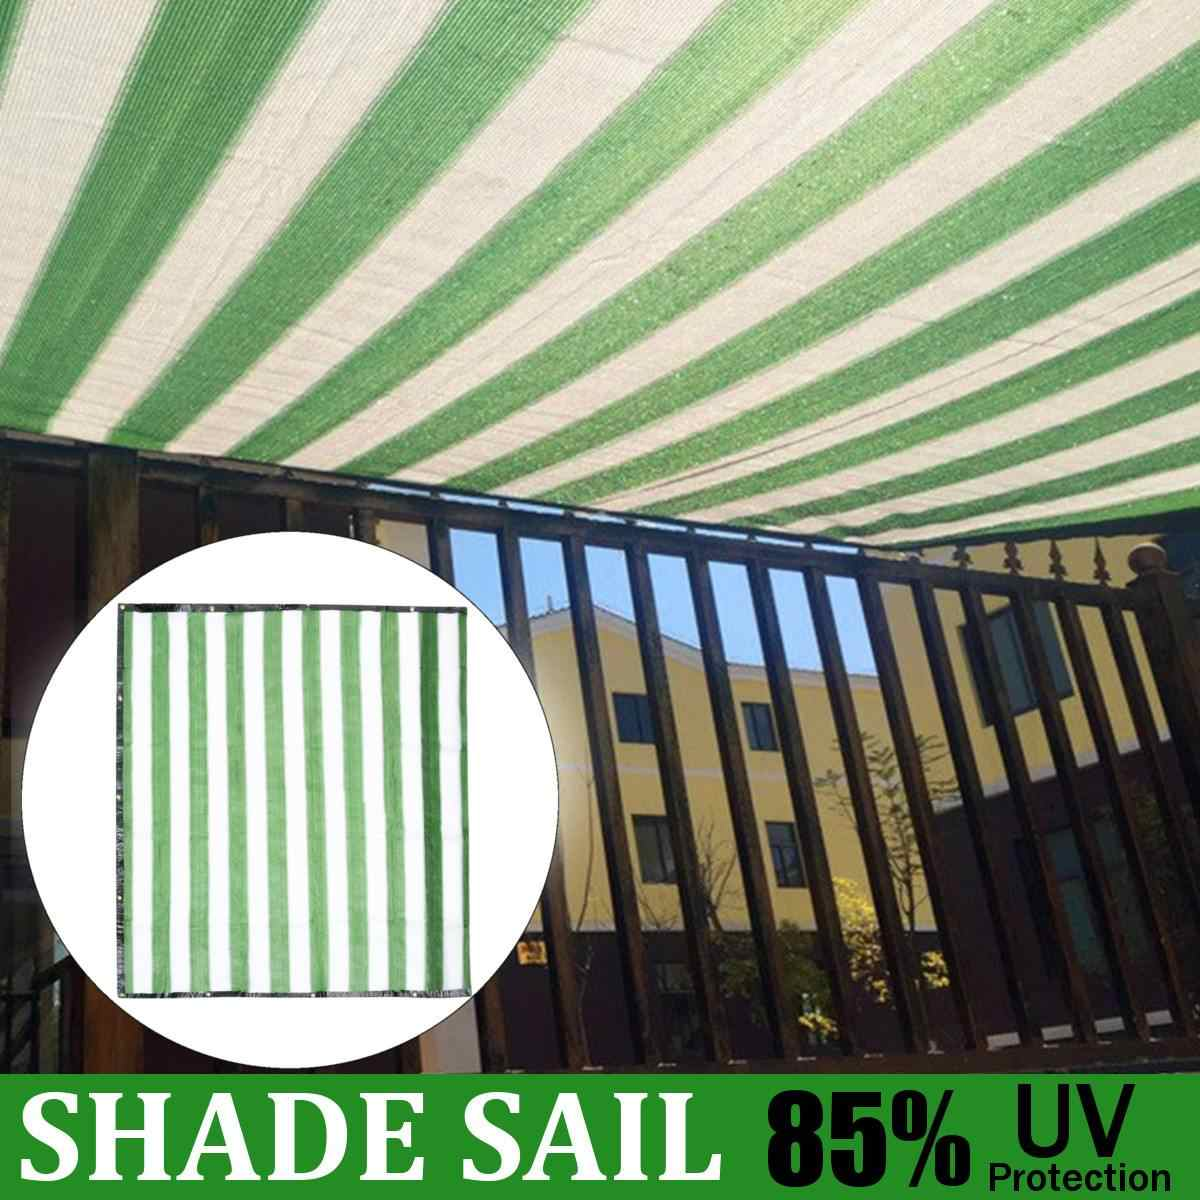 2 Size Shade Sail Net Cloth Outdoor Swimming Pool Waterproof ...